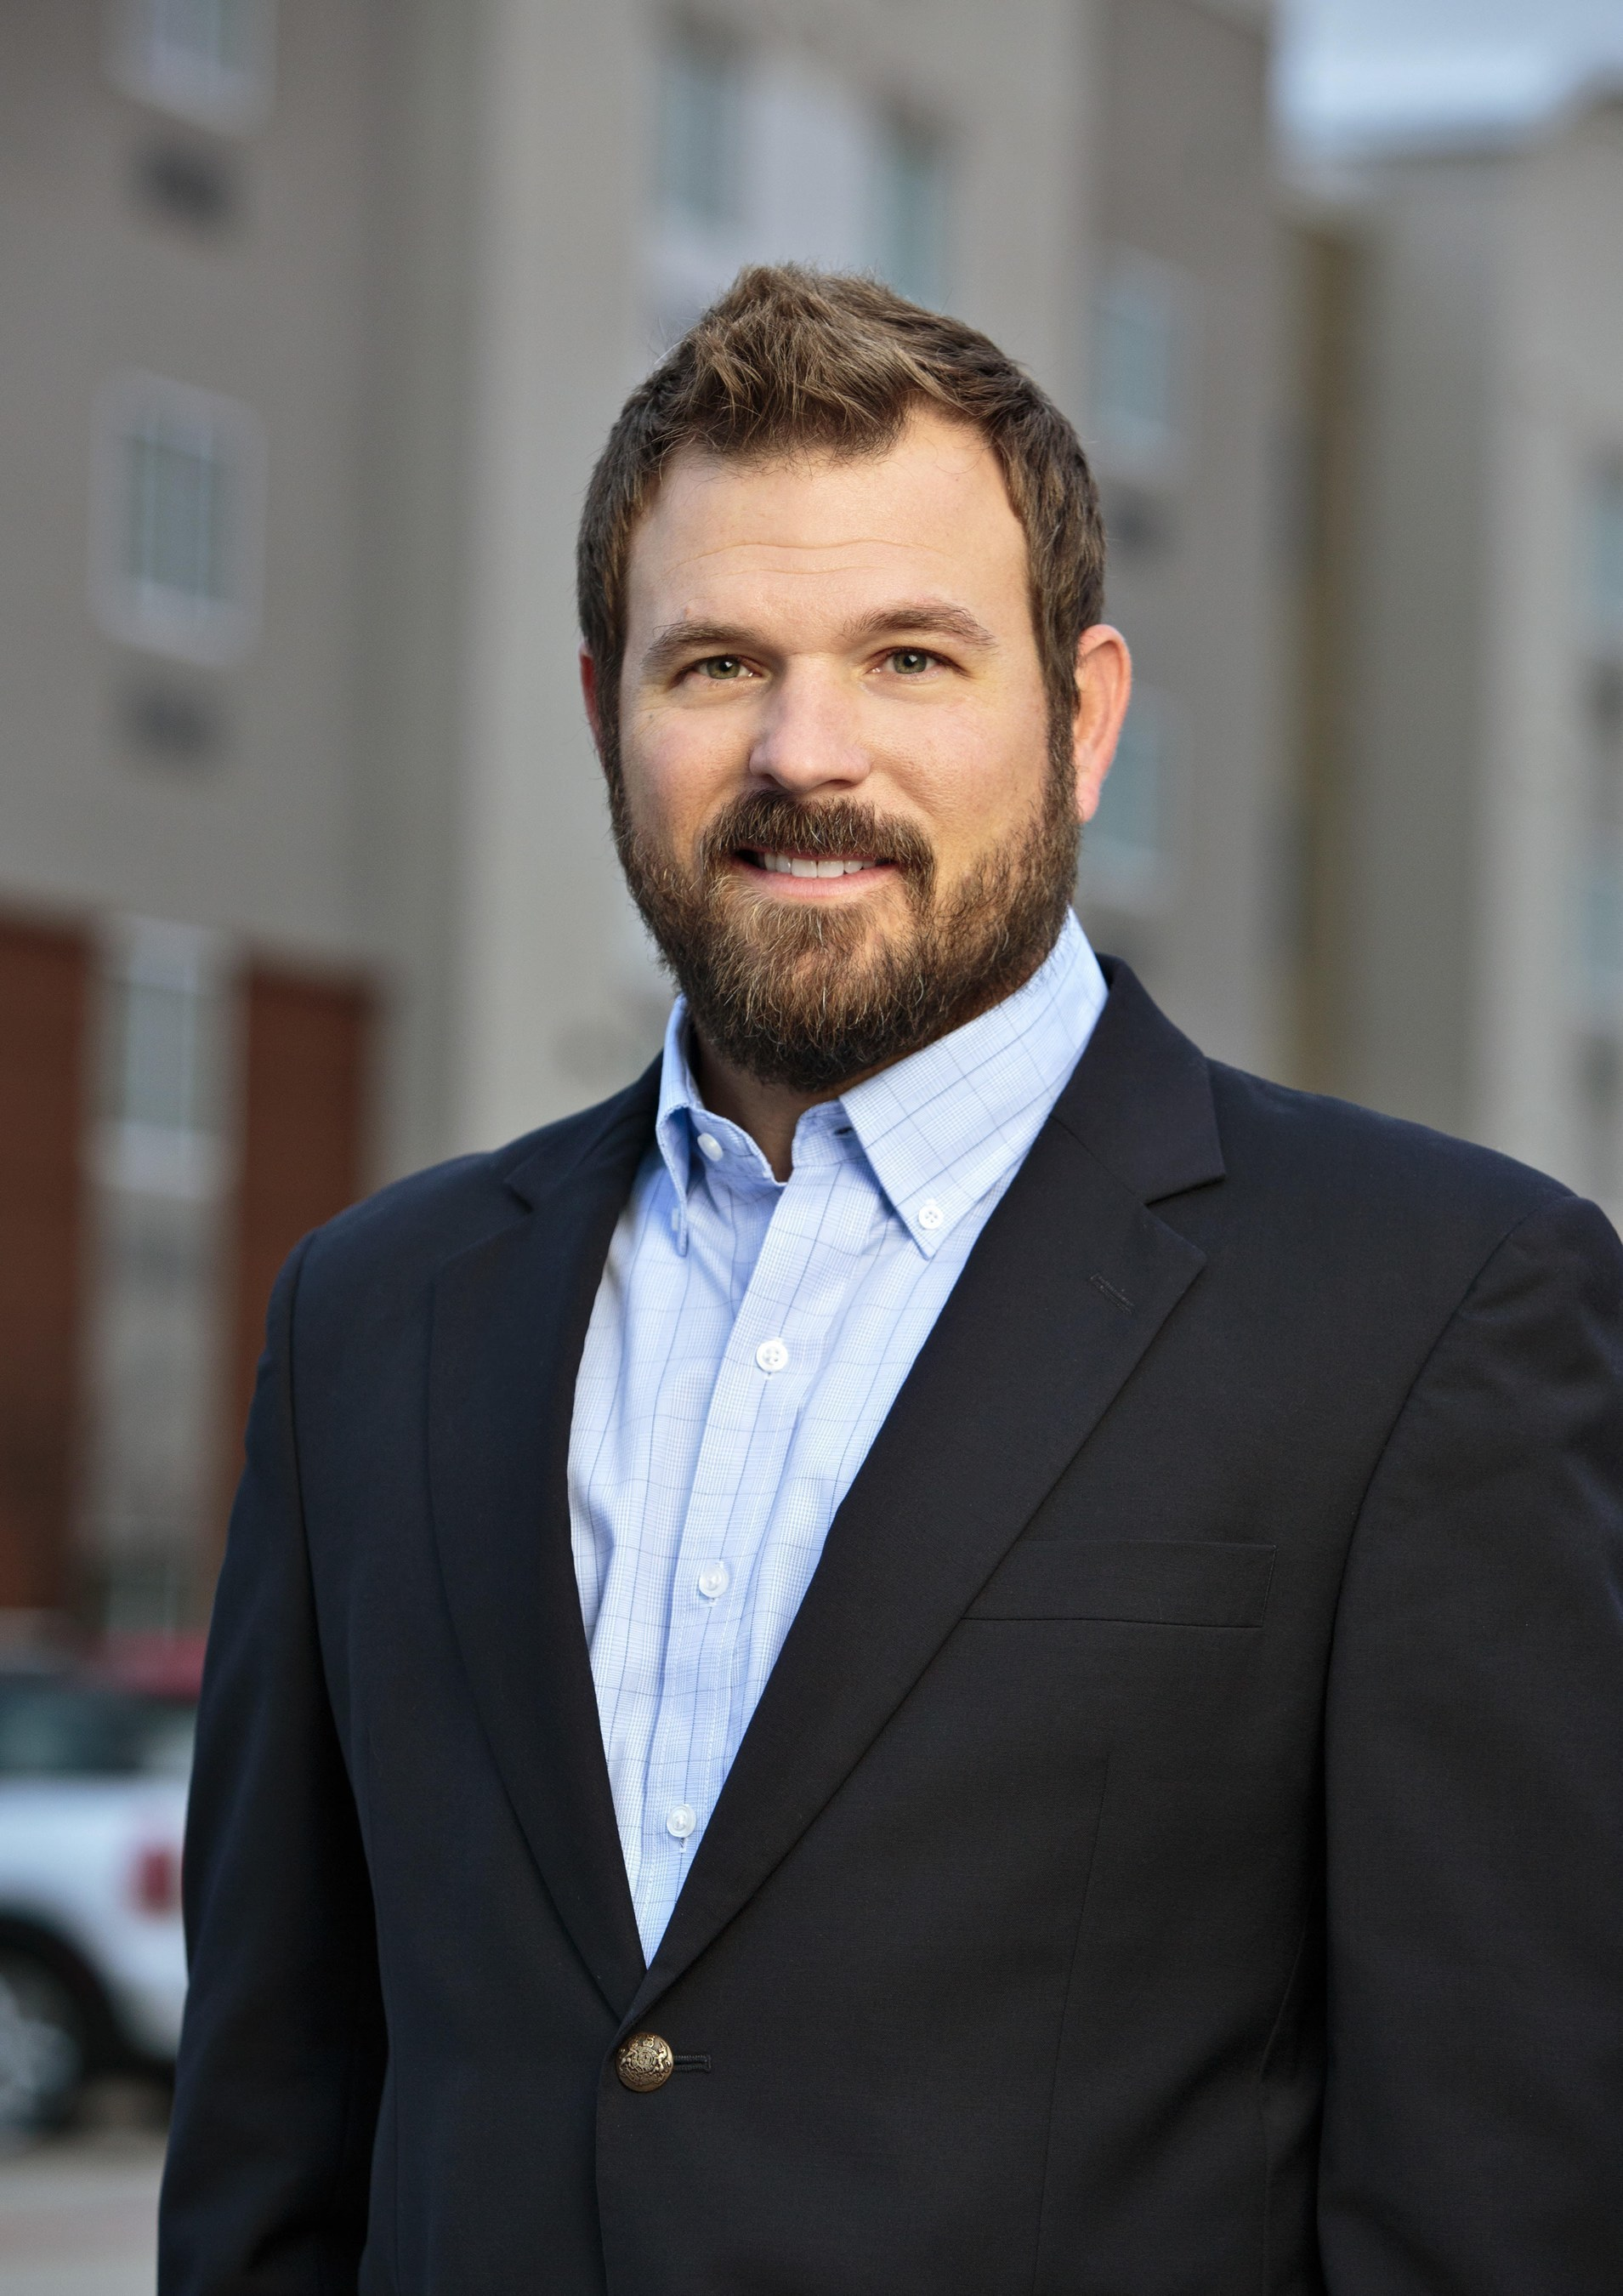 Doug Denman, CEO, Worth Coworking, LLC., is exclusive franchisee for Serendipity Labs Coworking in the Dallas/Fort Worth Metroplex. The first Lab is scheduled for early 2017, with nine urban and suburban locations throughout the area.